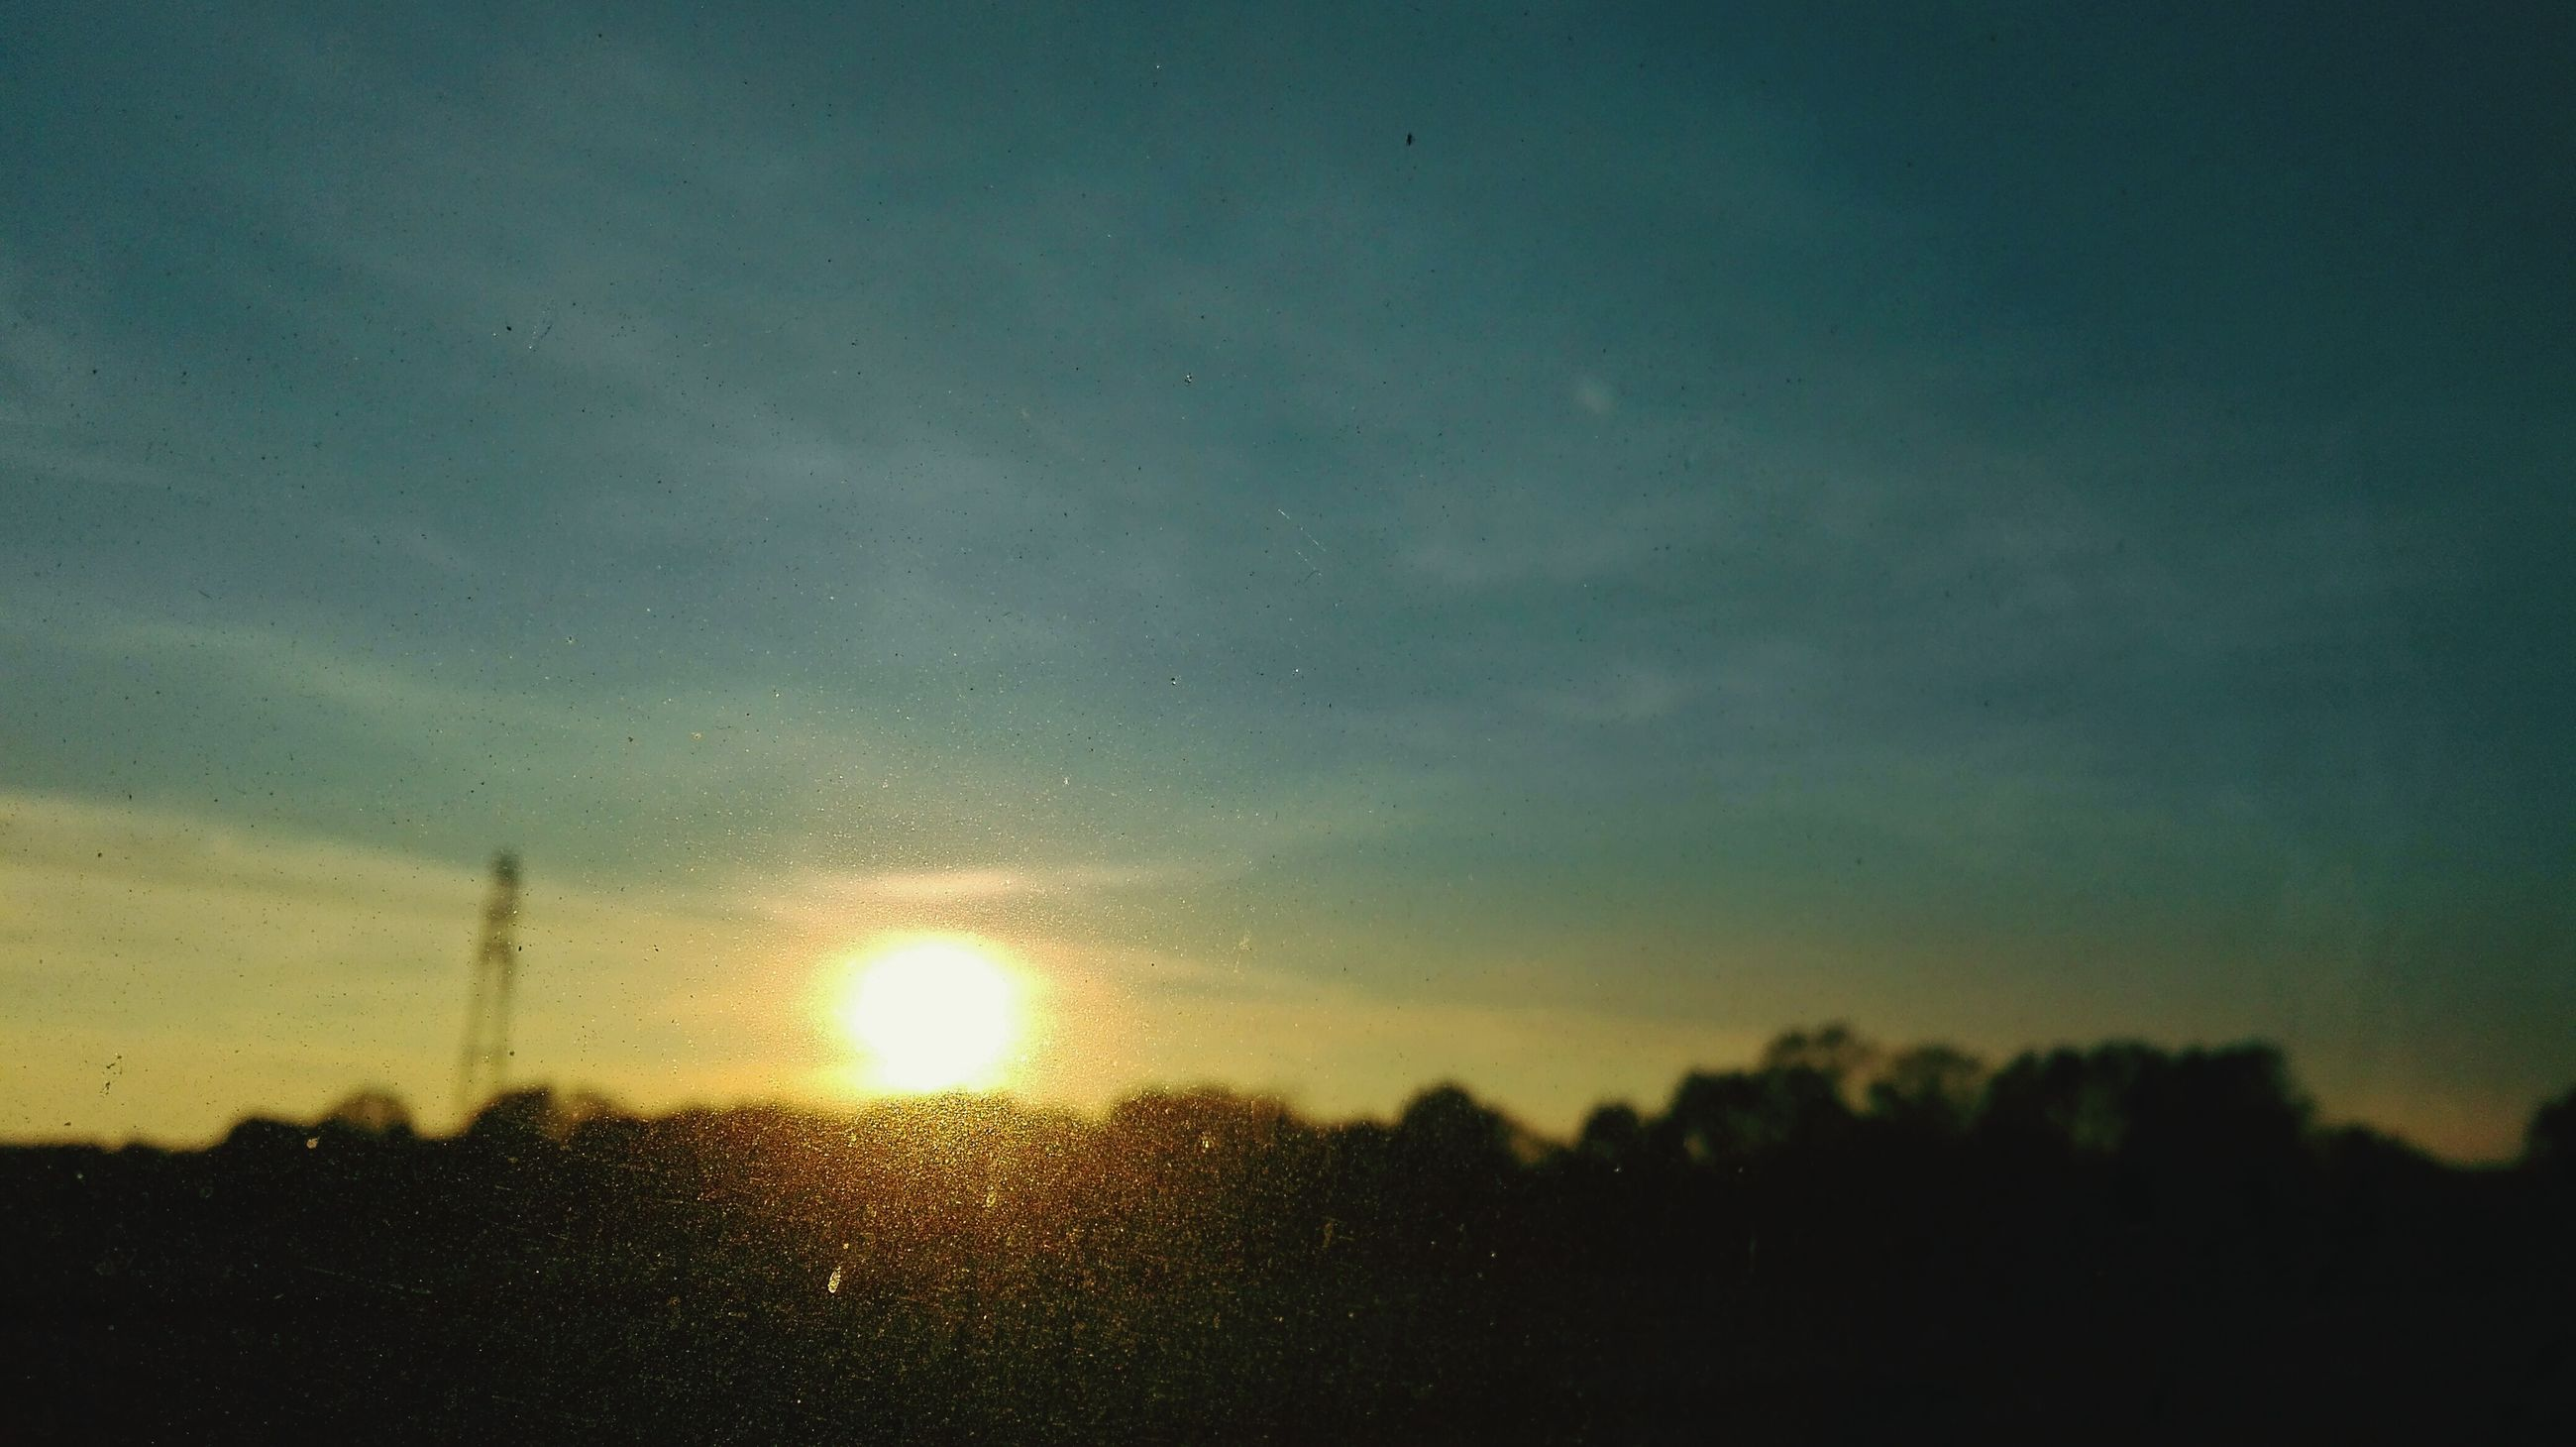 sunset, sky, scenics, sun, beauty in nature, silhouette, tranquility, tranquil scene, nature, orange color, drop, wet, landscape, water, idyllic, transparent, window, no people, dusk, outdoors